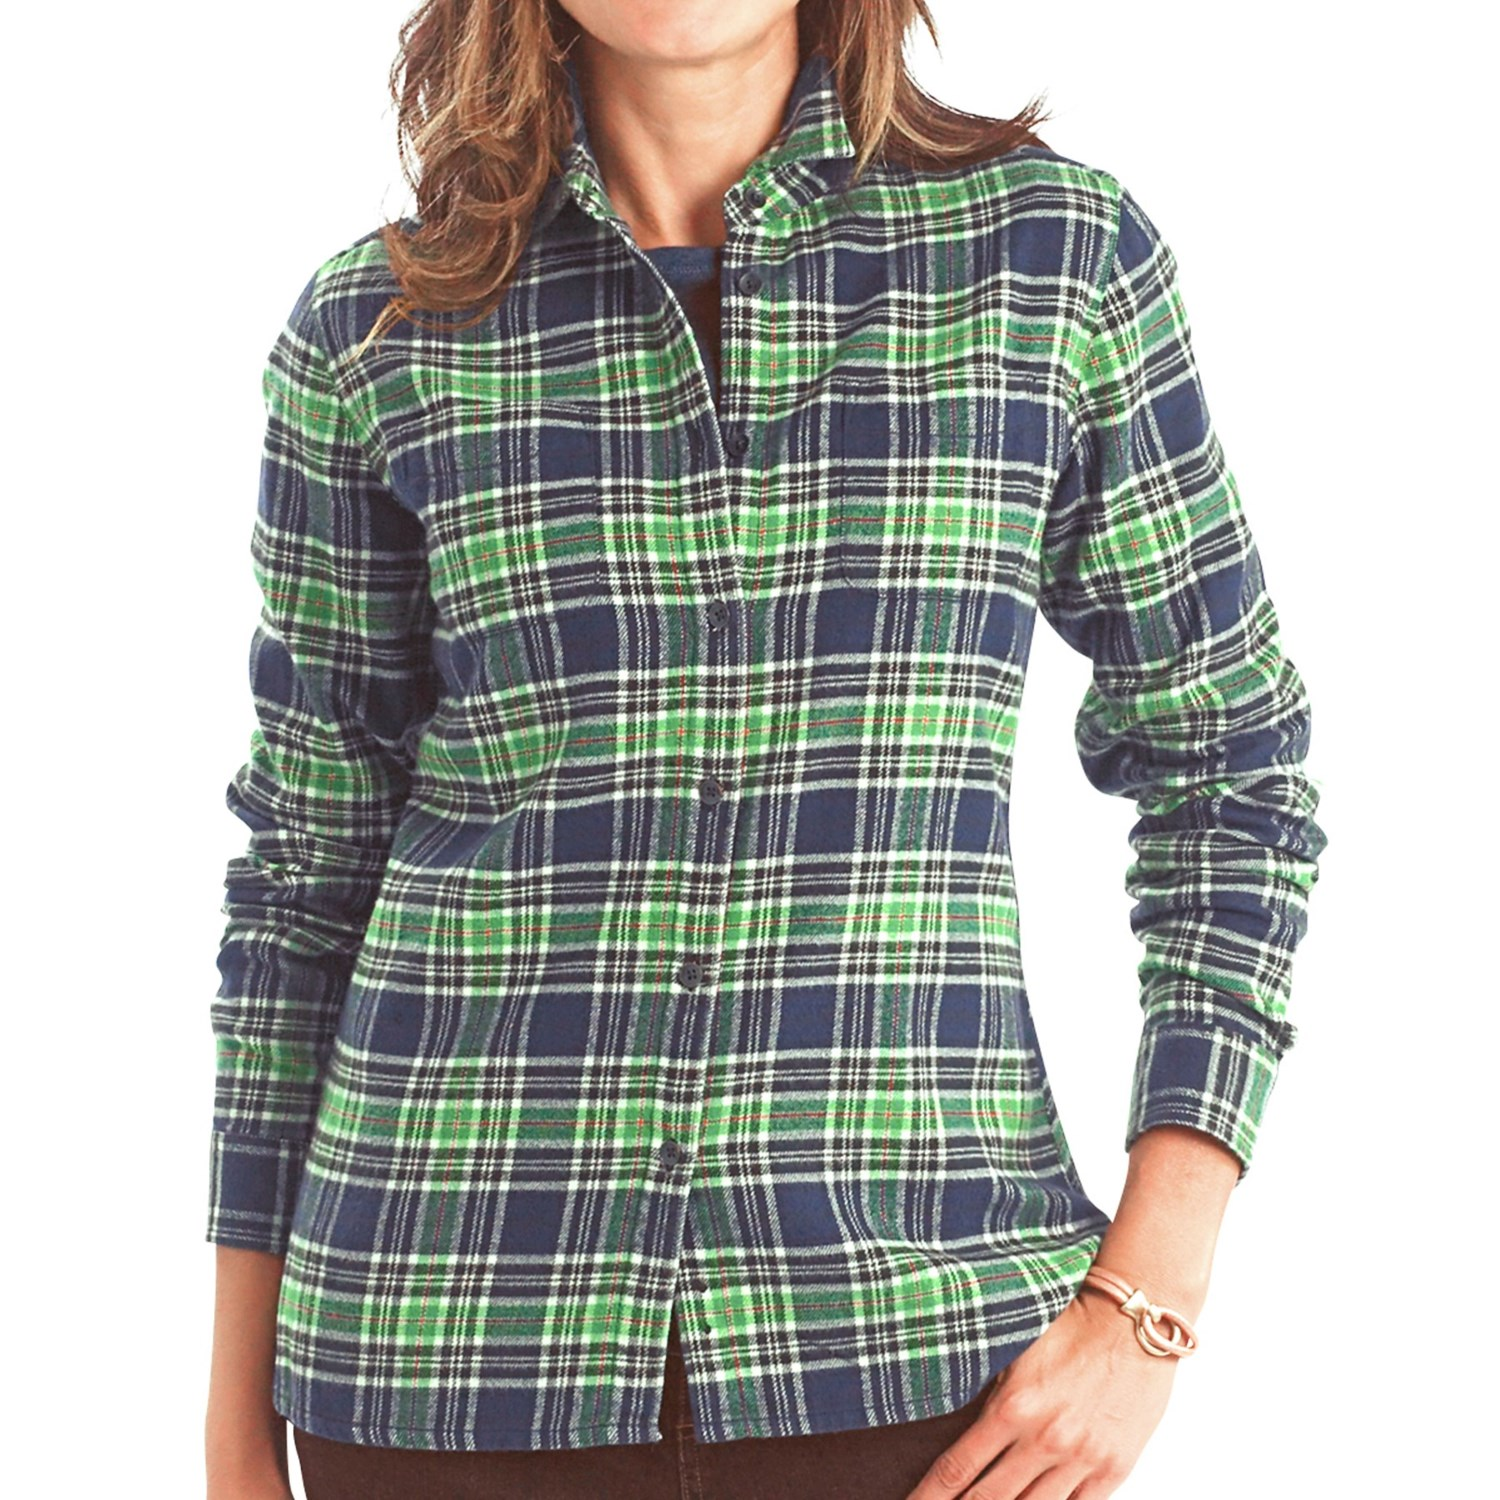 Woolrich pemberton flannel shirt long sleeve for women for Girl in flannel shirt